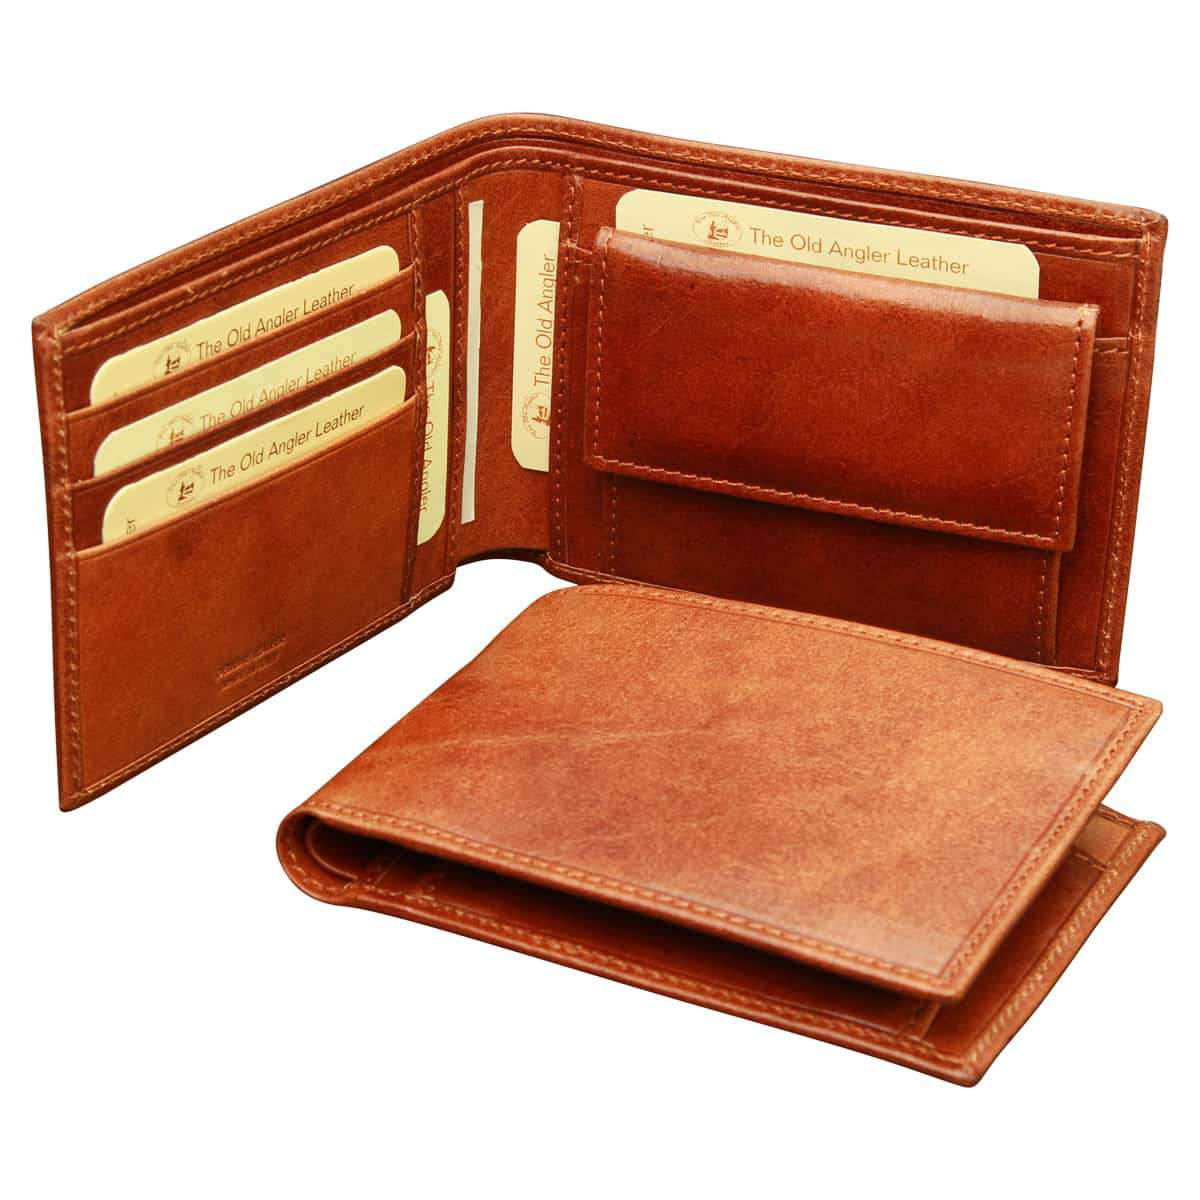 Cowhide leather wallet - Brown | 801205MA E | Old Angler Firenze